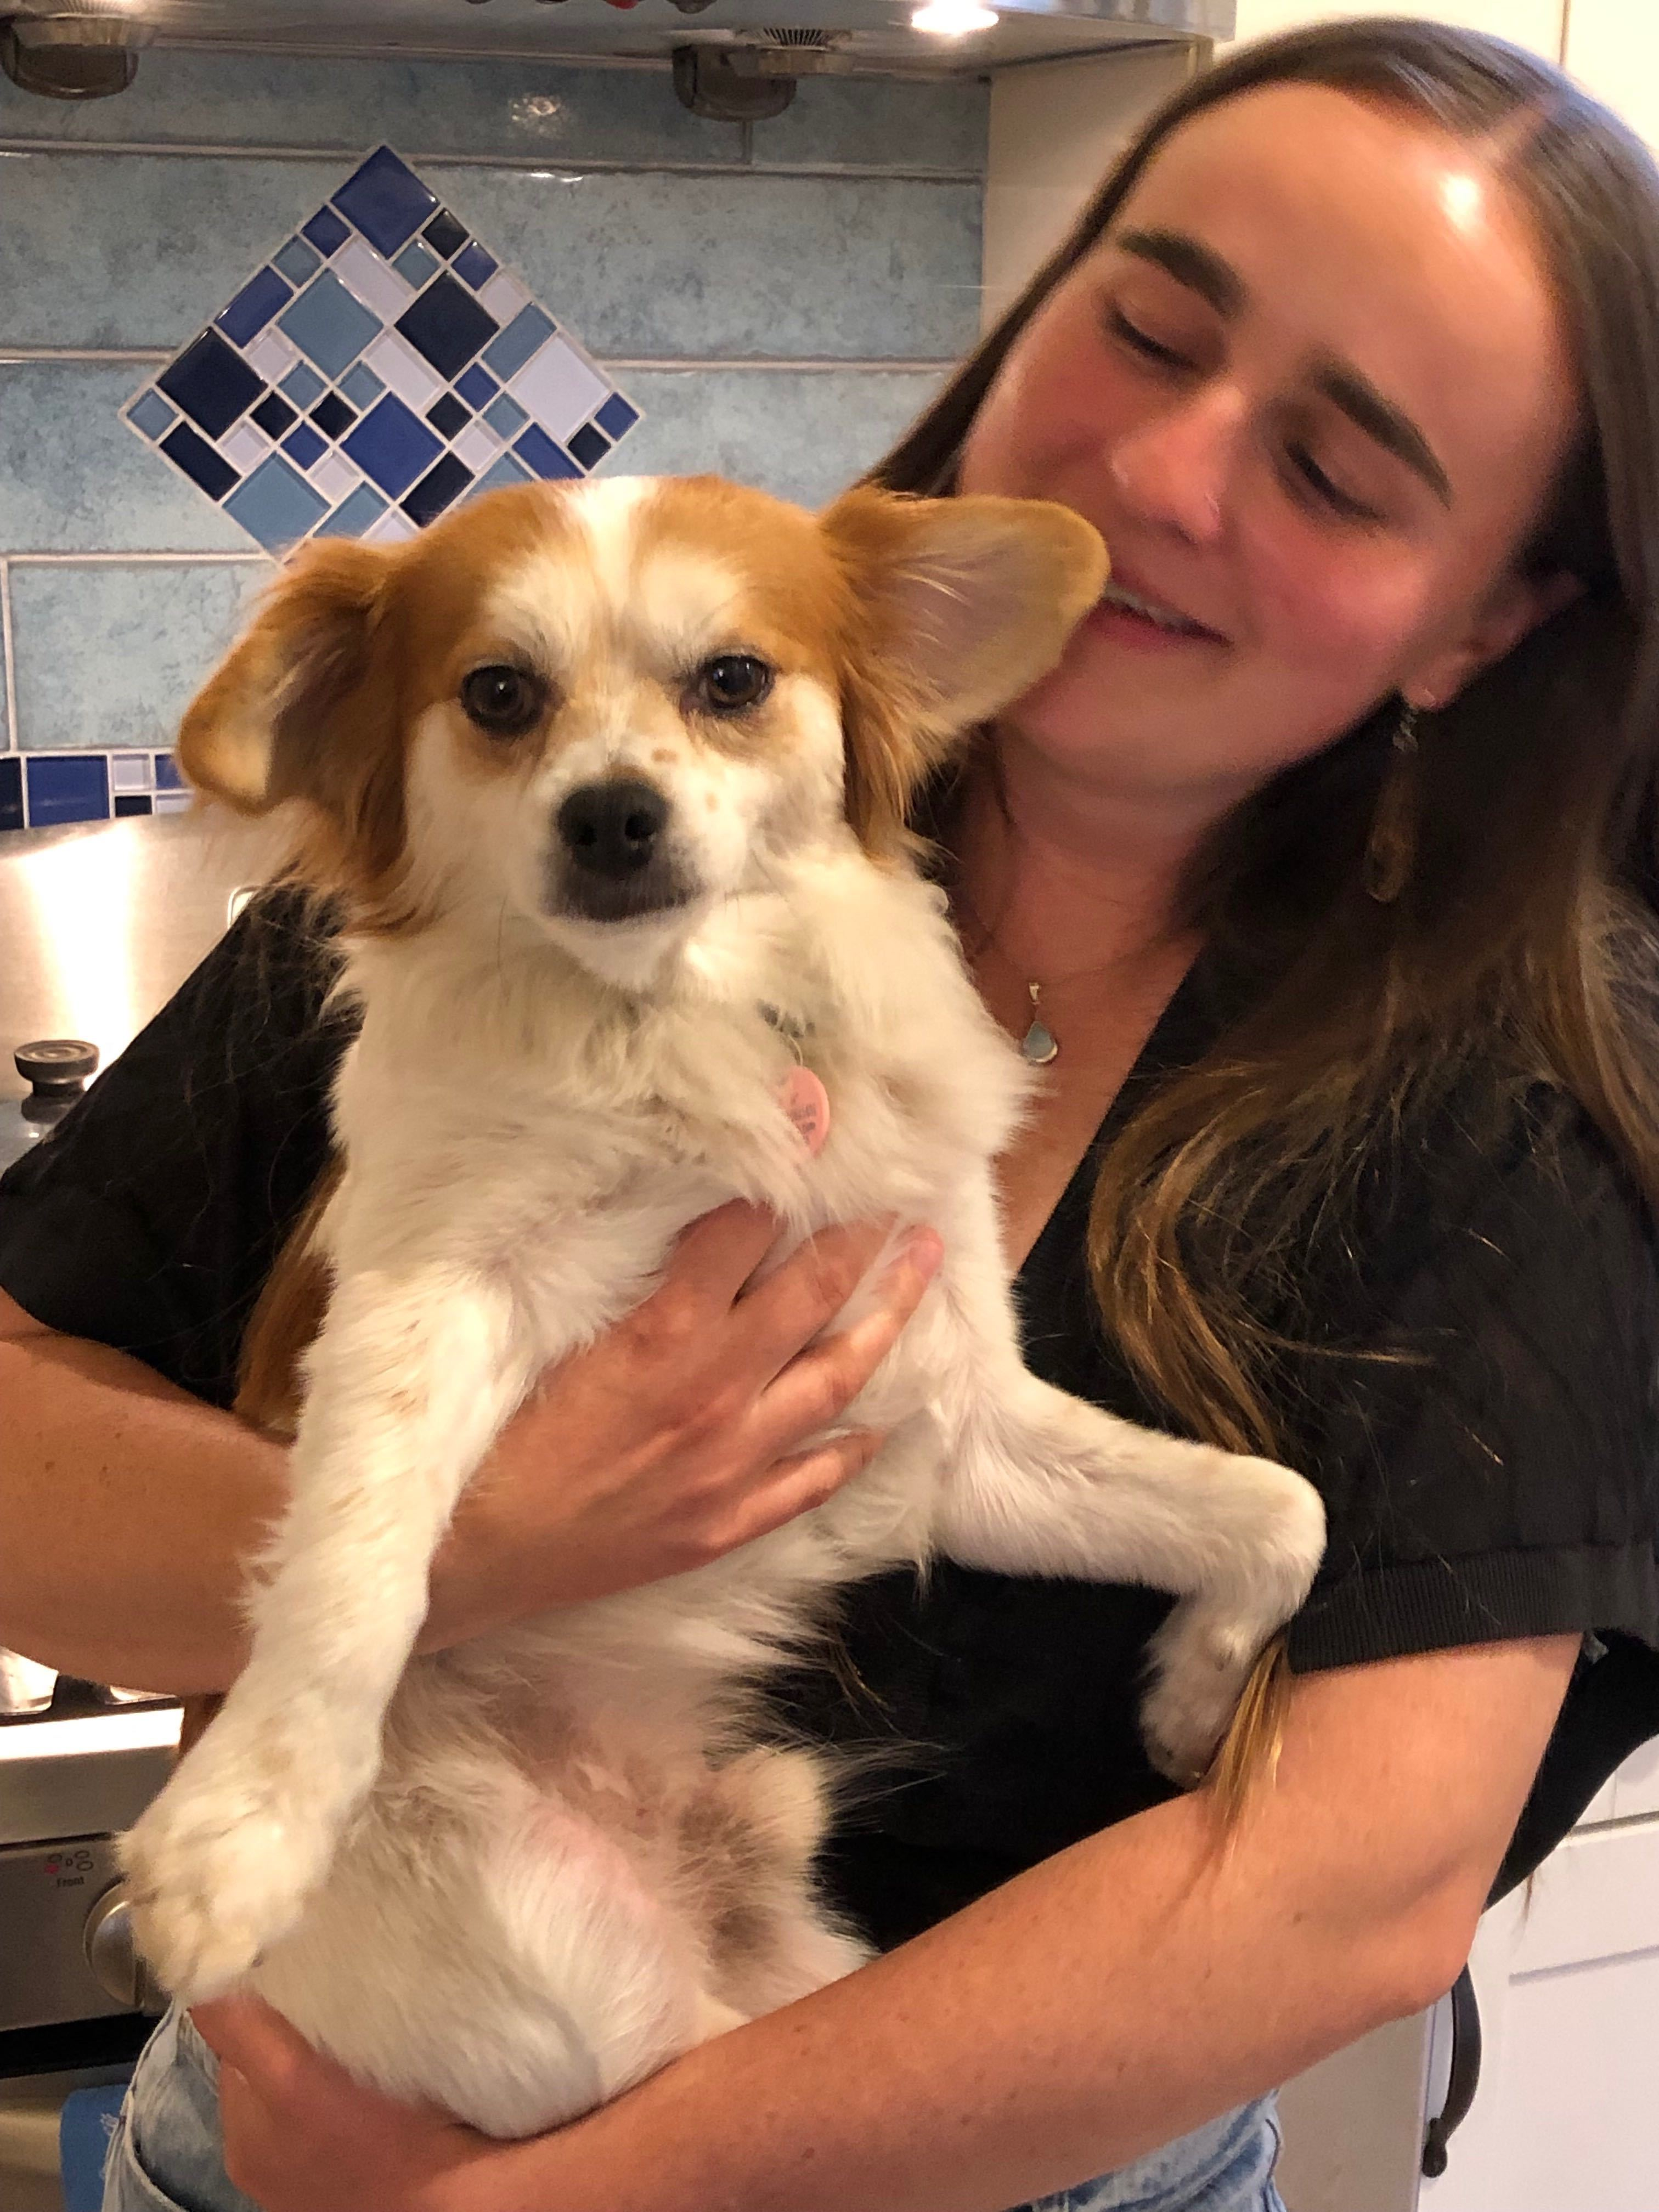 Small Cavalier King Charles and Pomeranian mix dog in the arms of young woman.